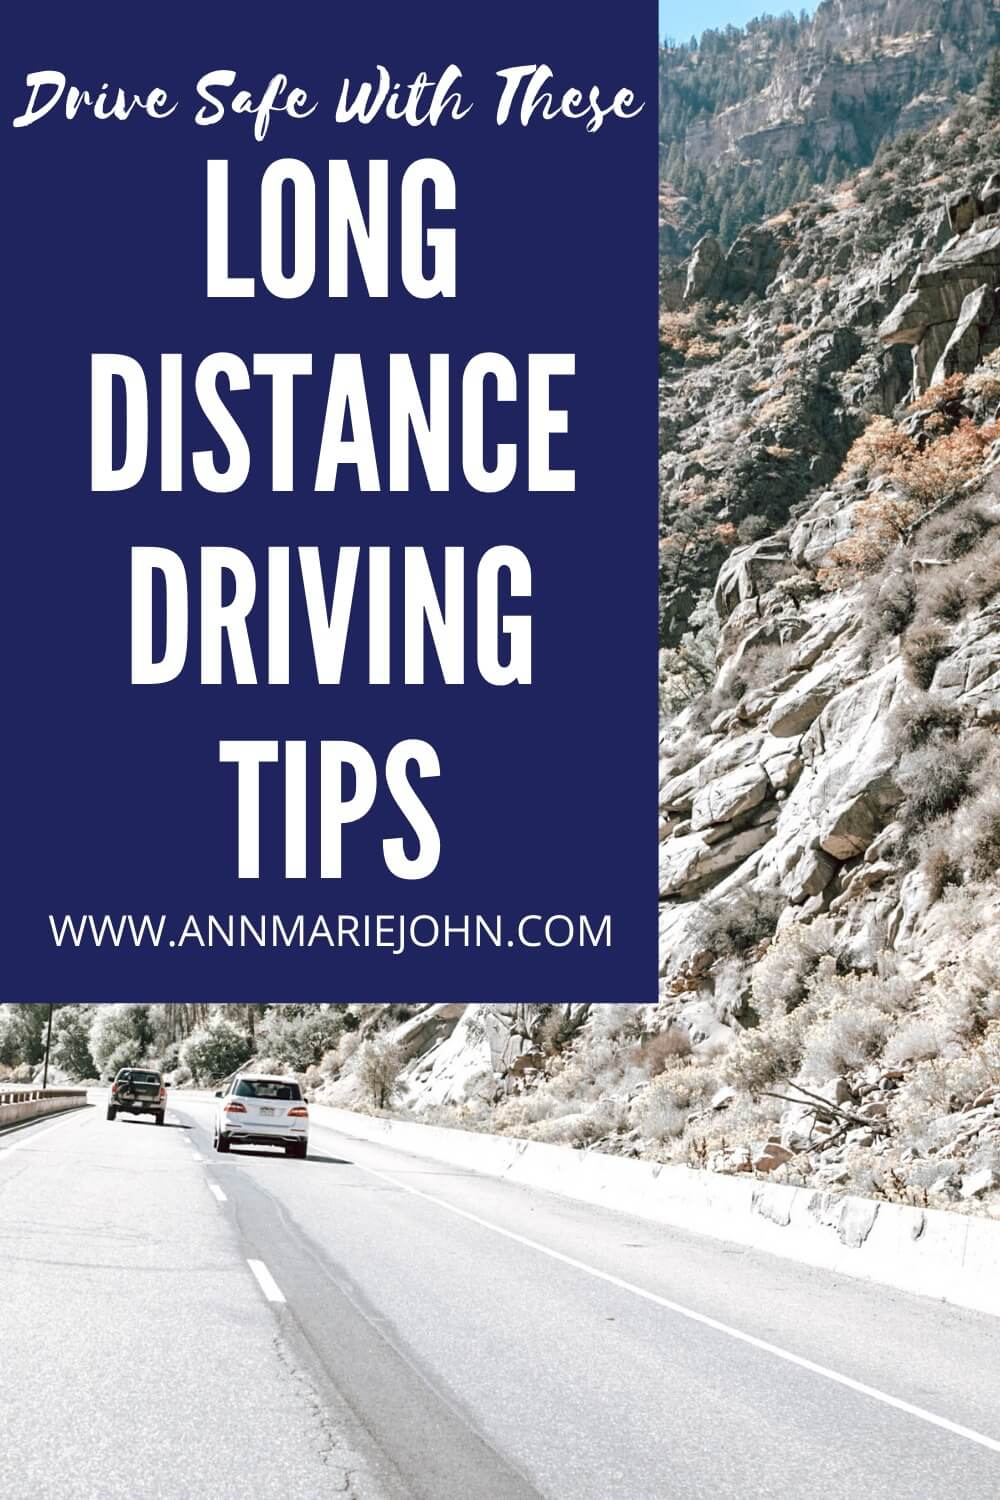 Long Distance Driving Tips Pinterest Image